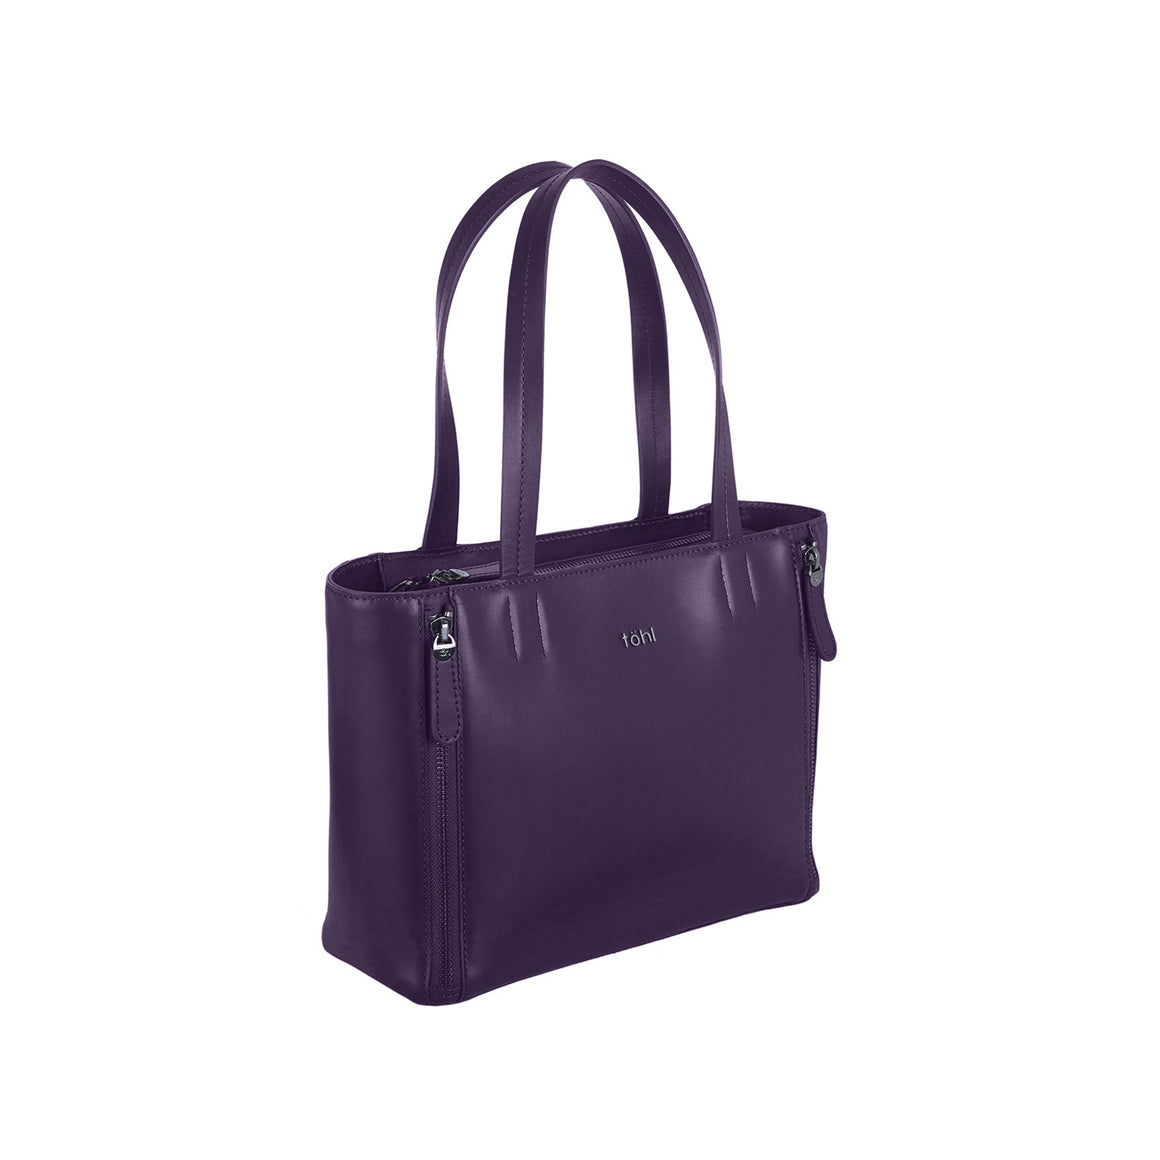 HH 0004 - TOHL VARICK WOMEN'S TOTE BAG - AUBERGINE